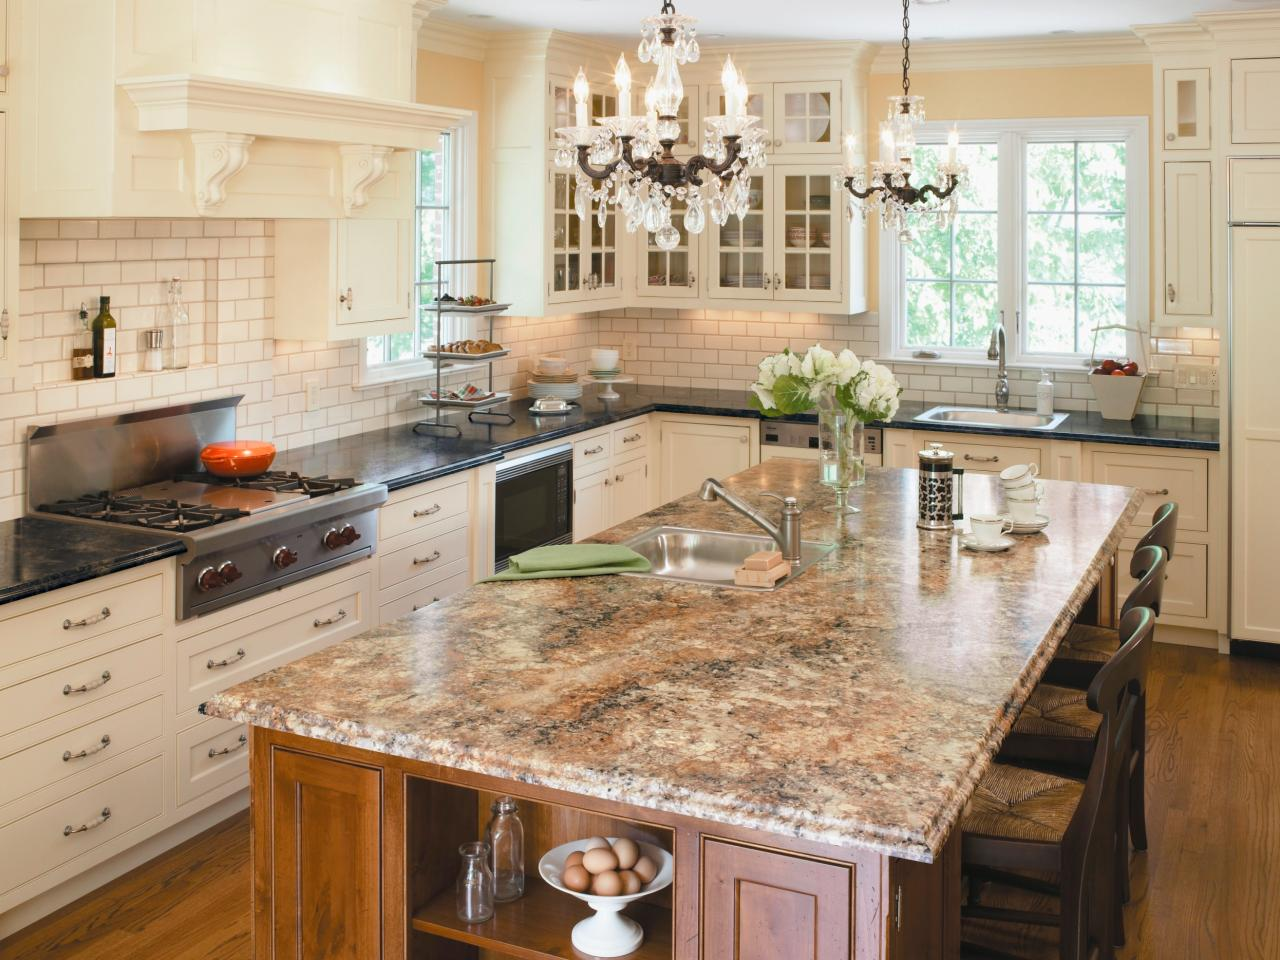 Kitchen Countertops Laminate : upscale laminate countertops today s laminate countertops can mimic ...